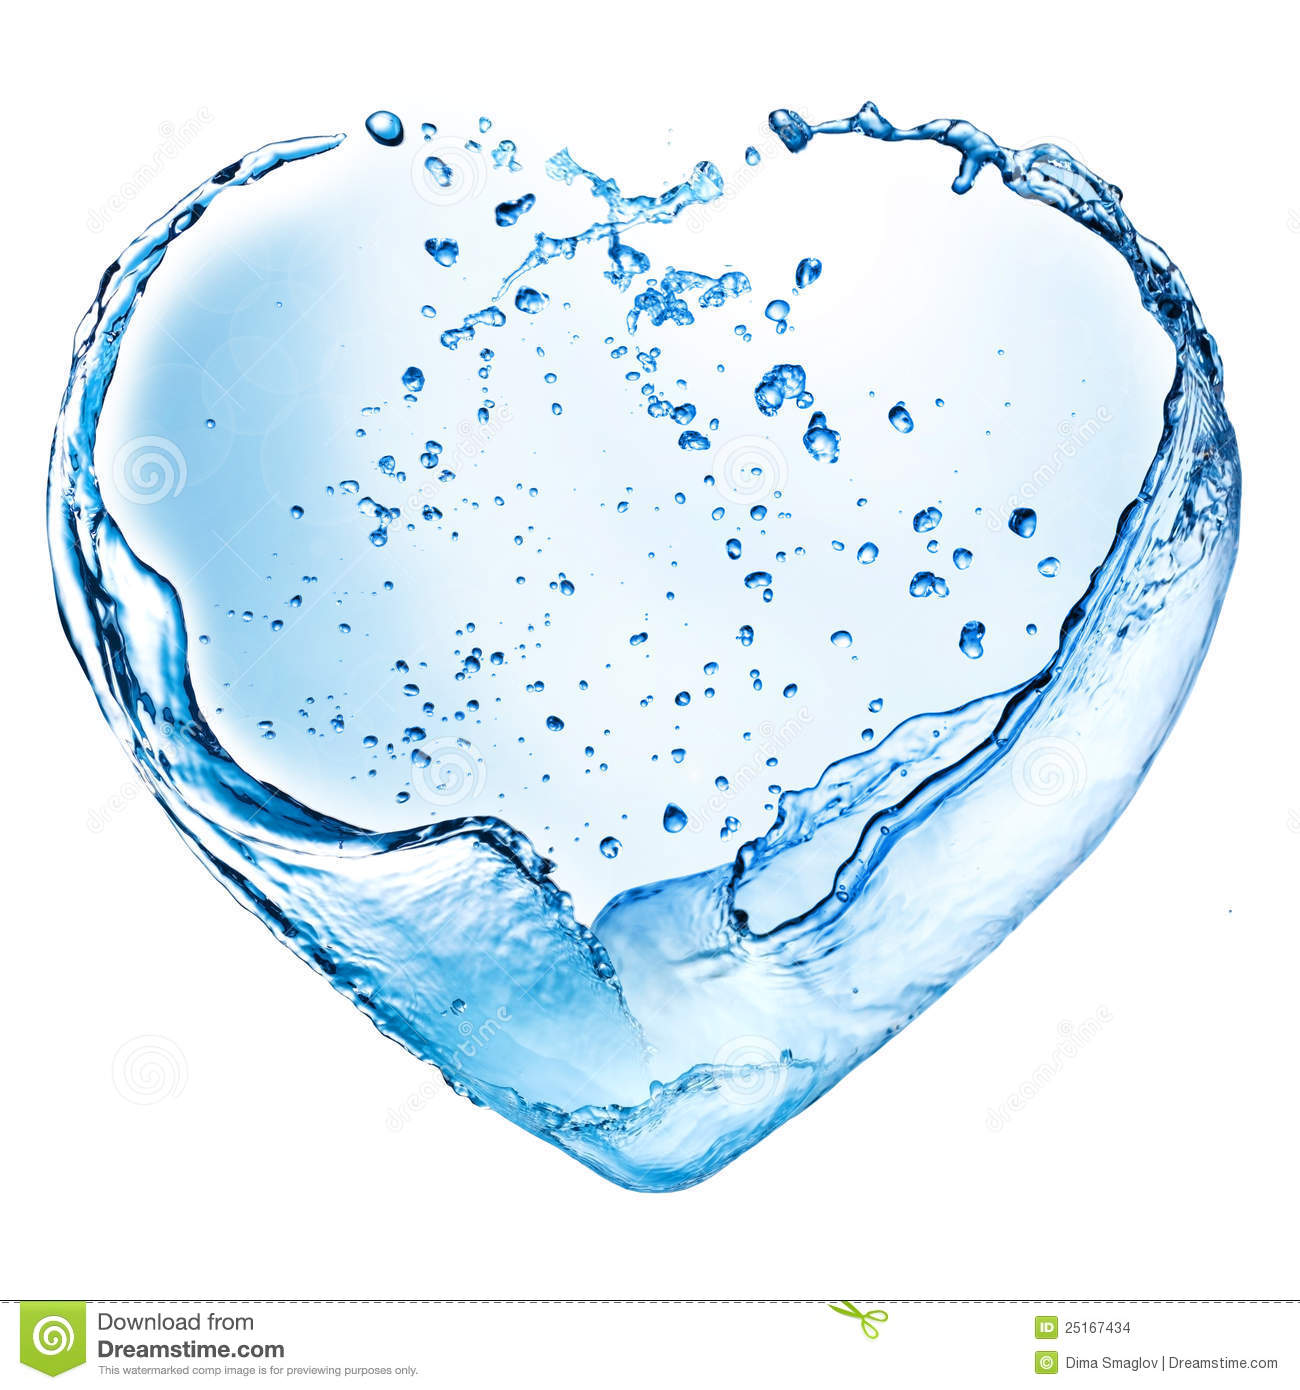 Valentine Heart Made Of Water Splash Stock Photo - Image ...